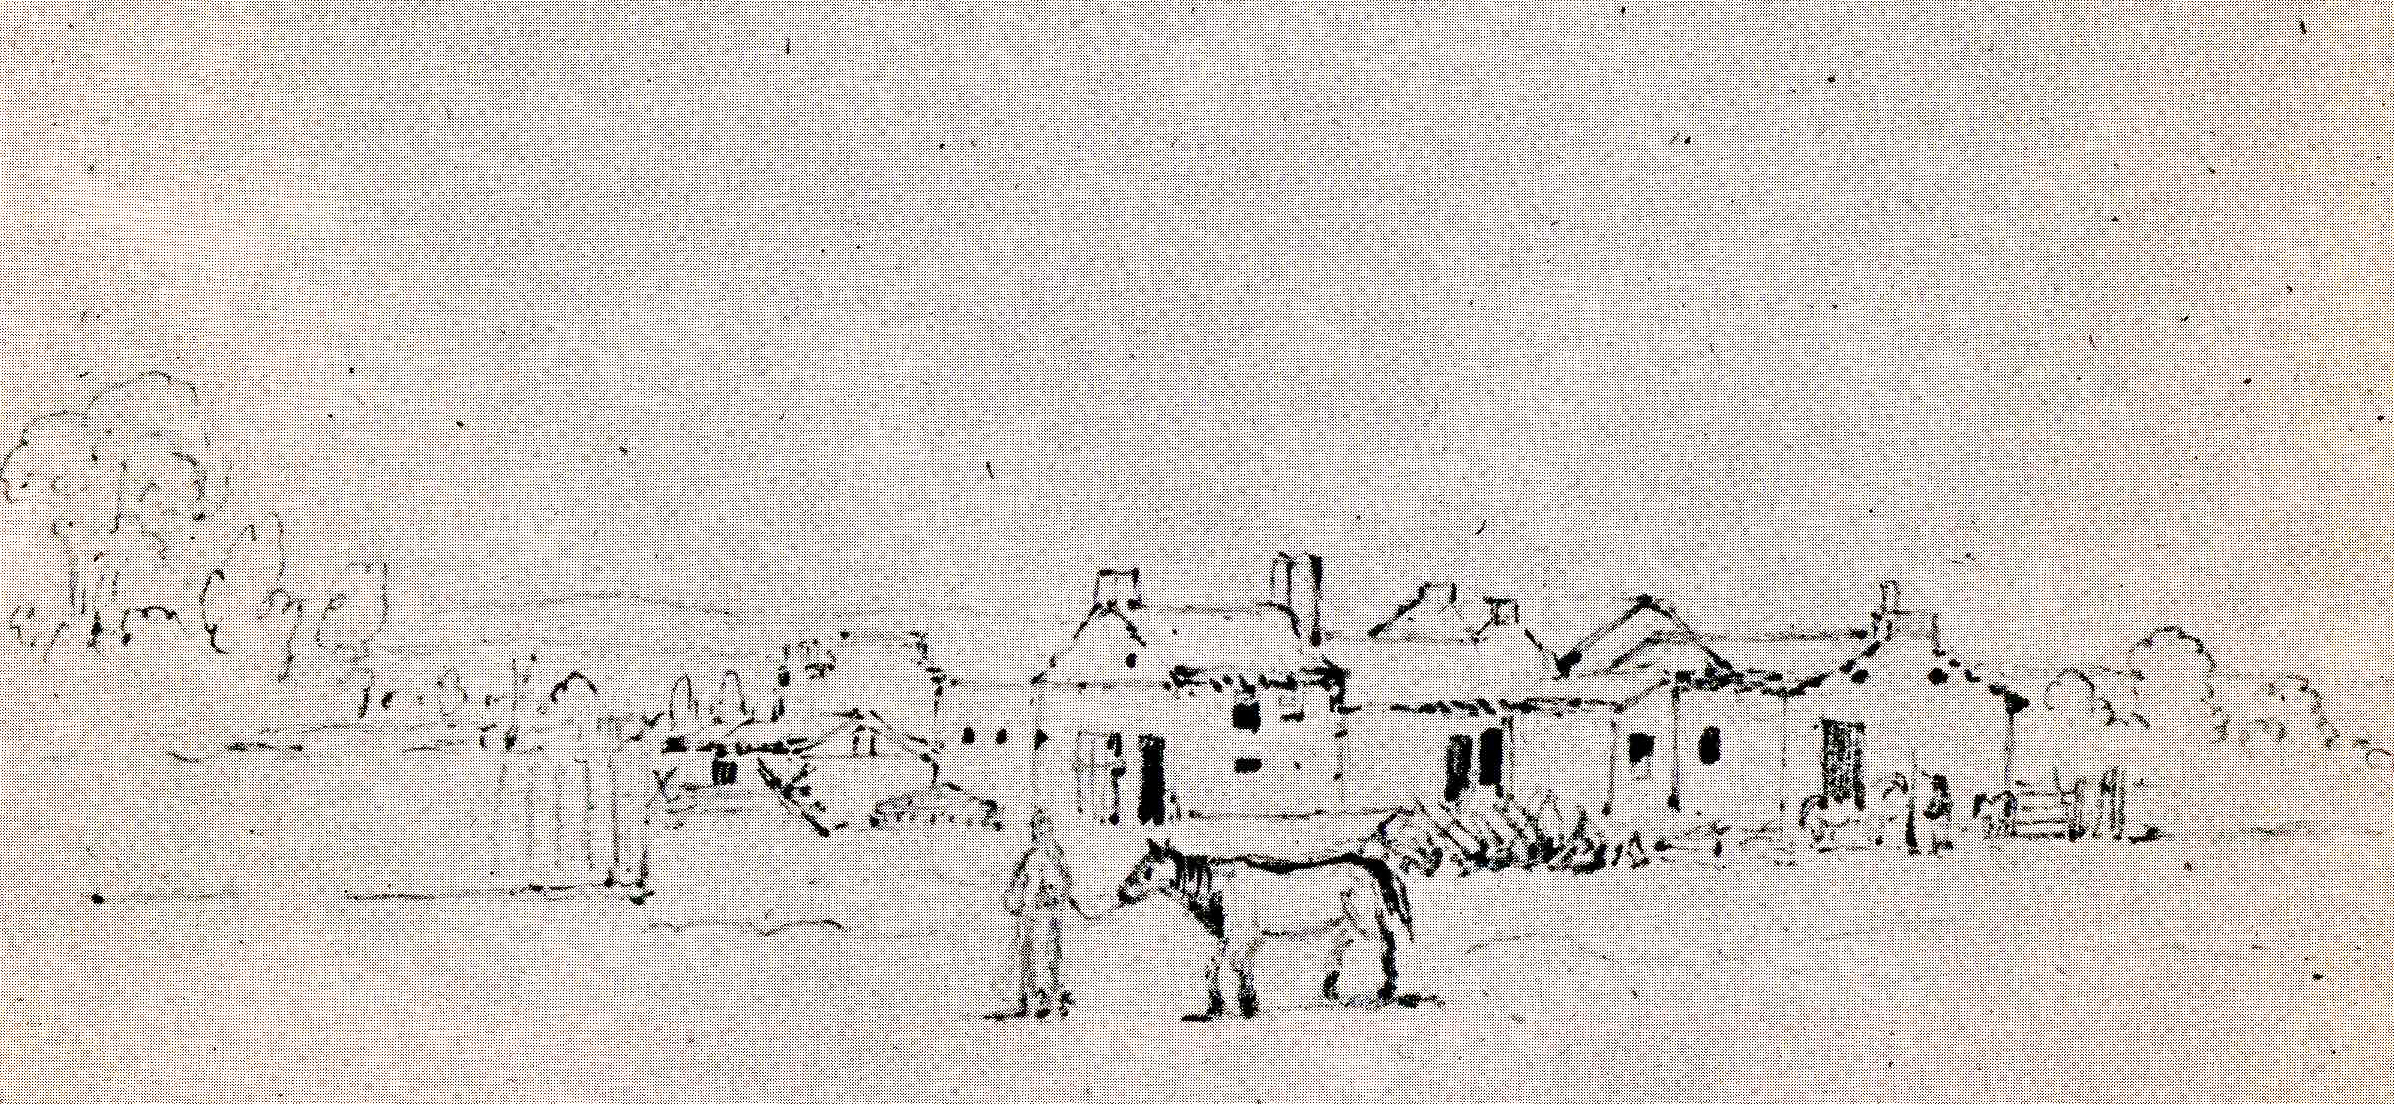 Marcus whitman 1802 1847 whitman mission paul kane sketch of ca publicscrutiny Image collections